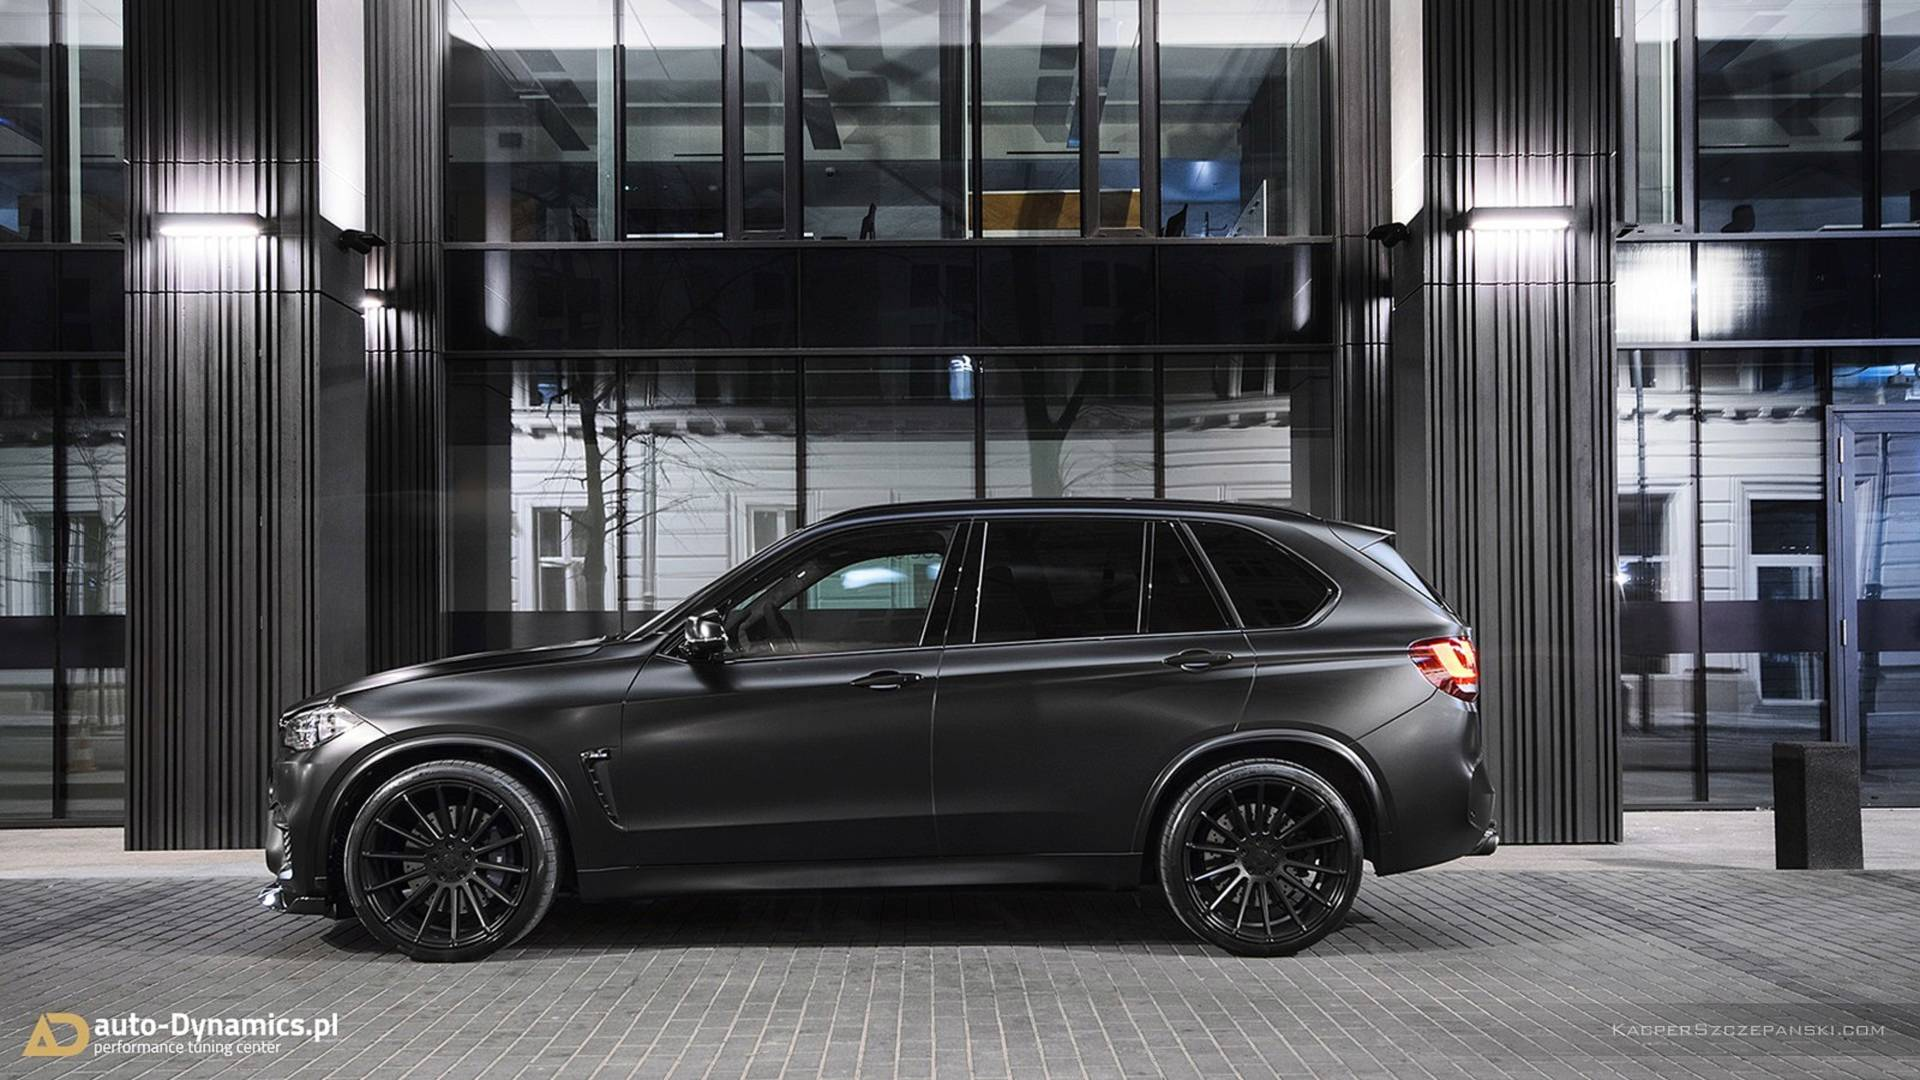 Bmw X5 M Avalanche Has 670 Hp Is Very Angry